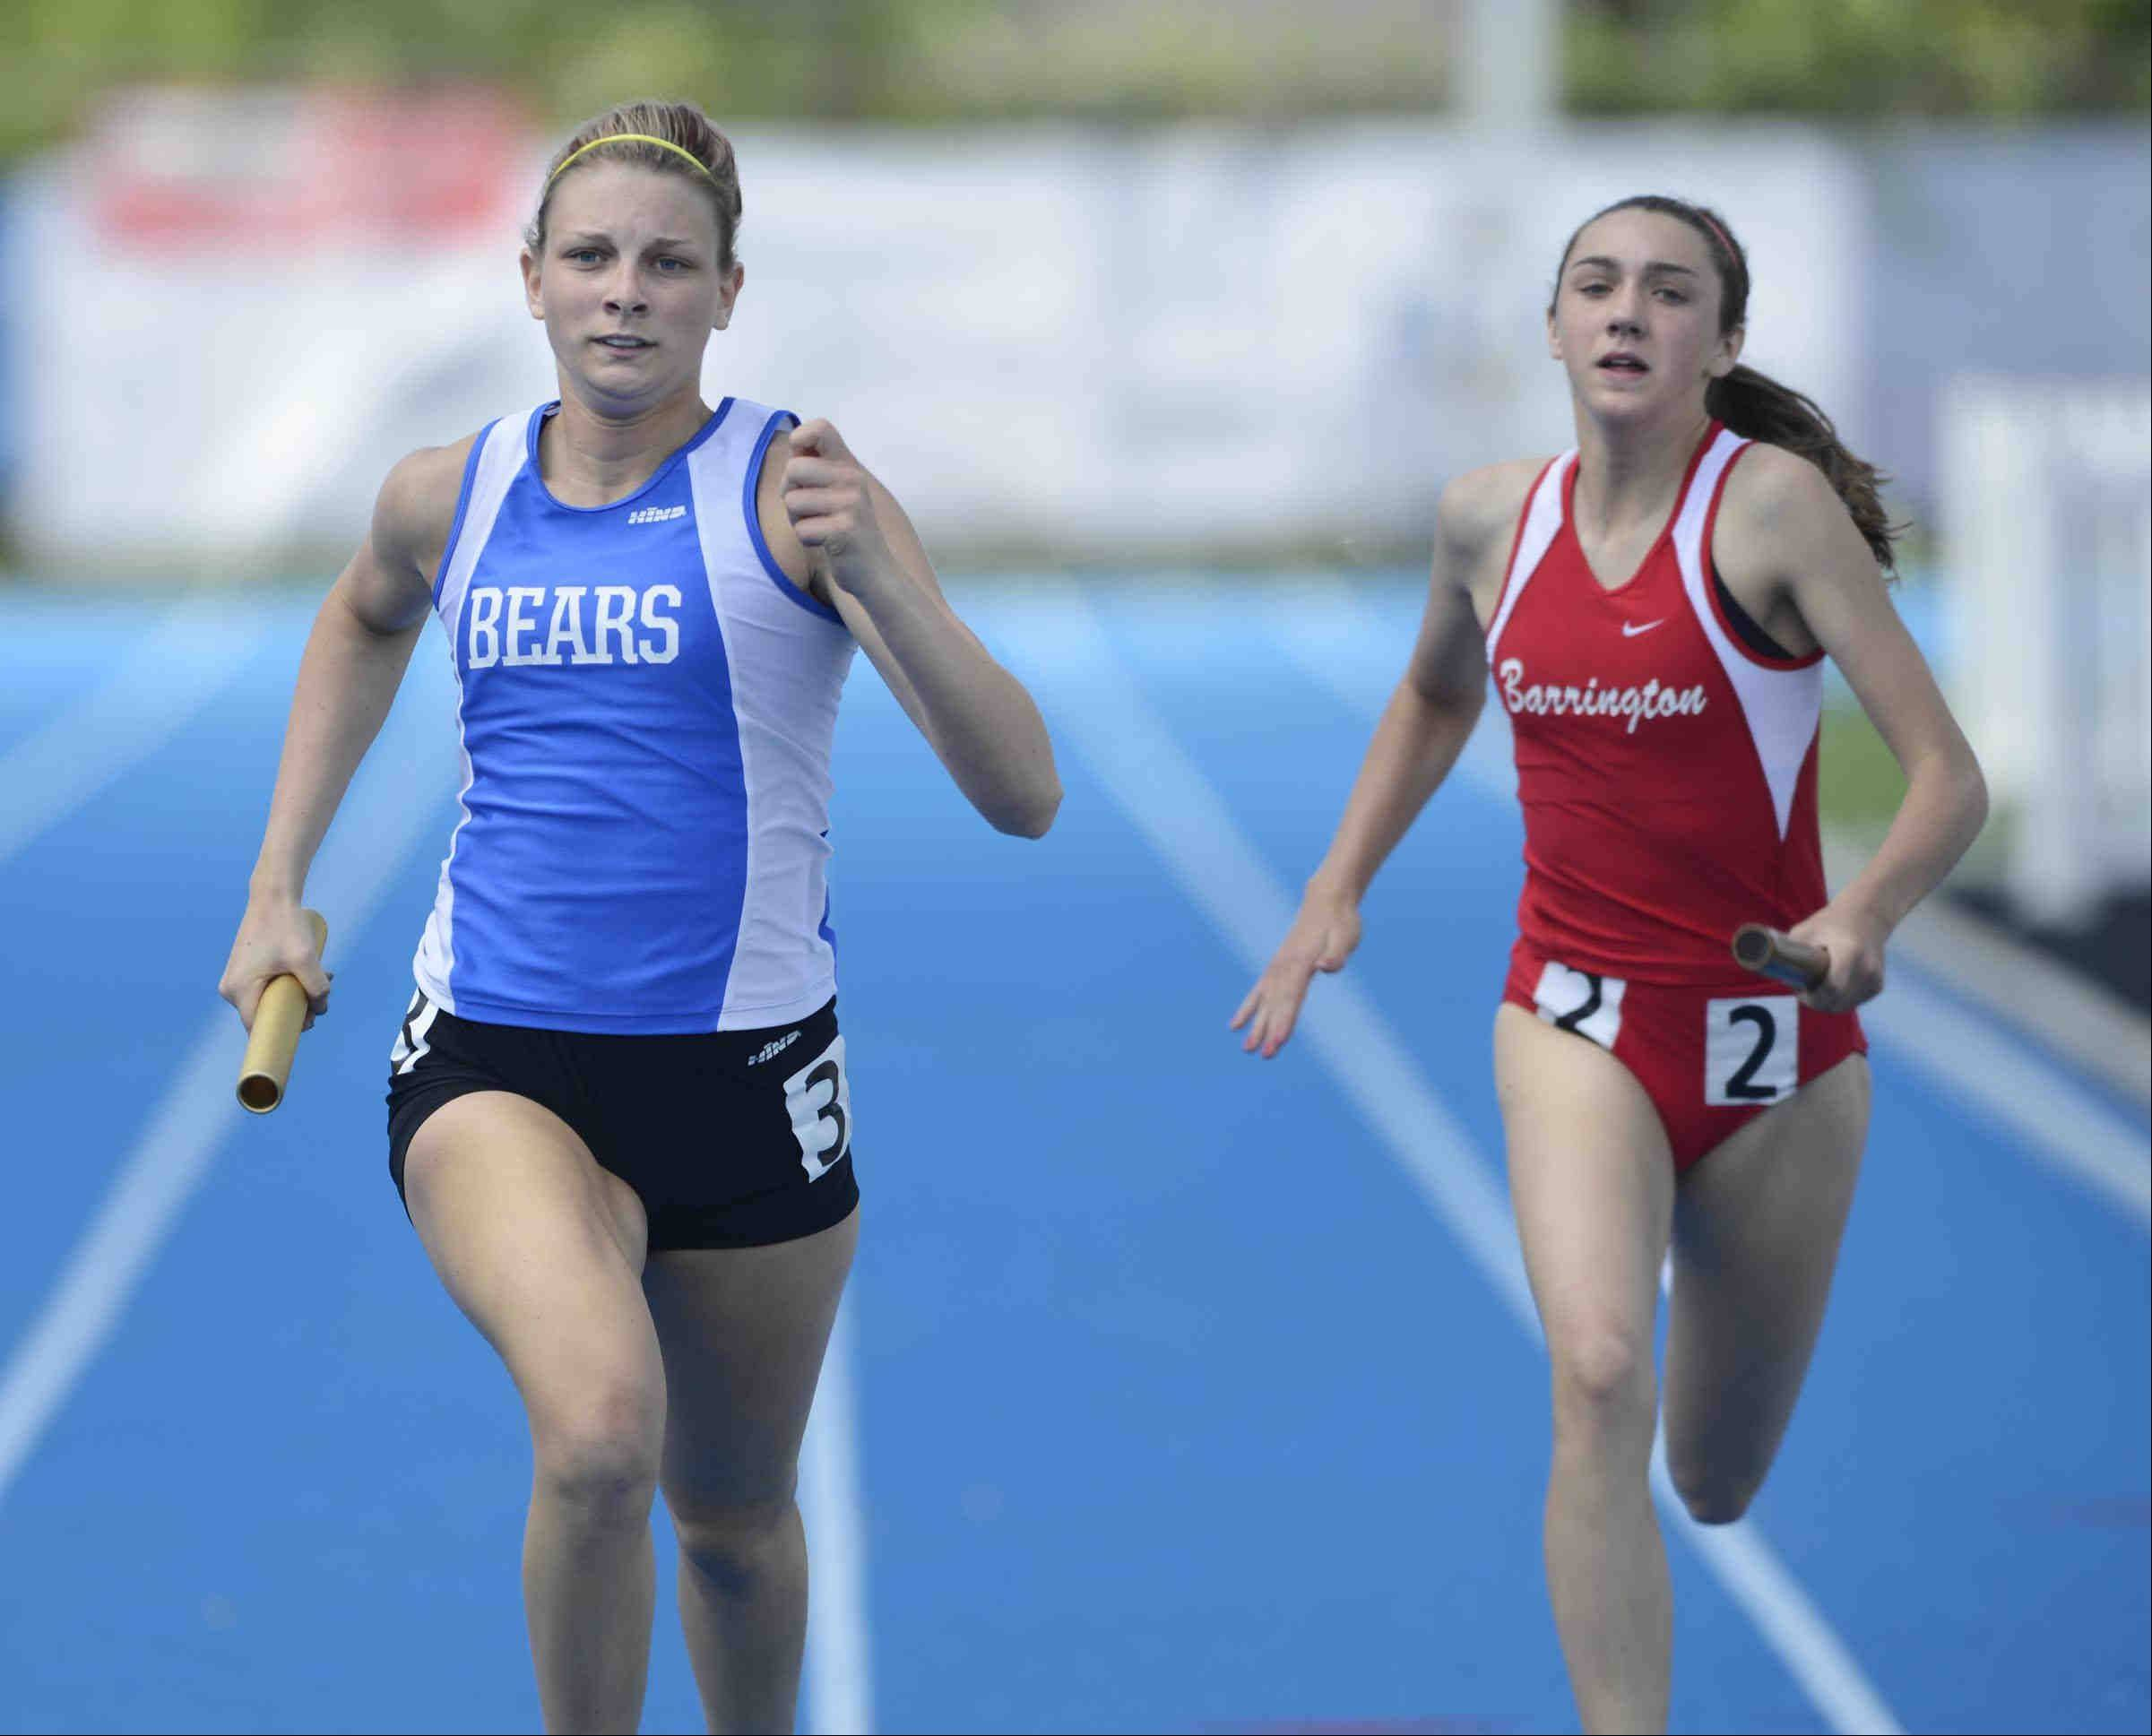 Lake Zurich's Lindsey Moritz leads Barrington's Sara-Kate Capel to the finish of the 800-meter relay Friday at the Class 3A girls state track and field preliminaries at O'Brien Stadium.